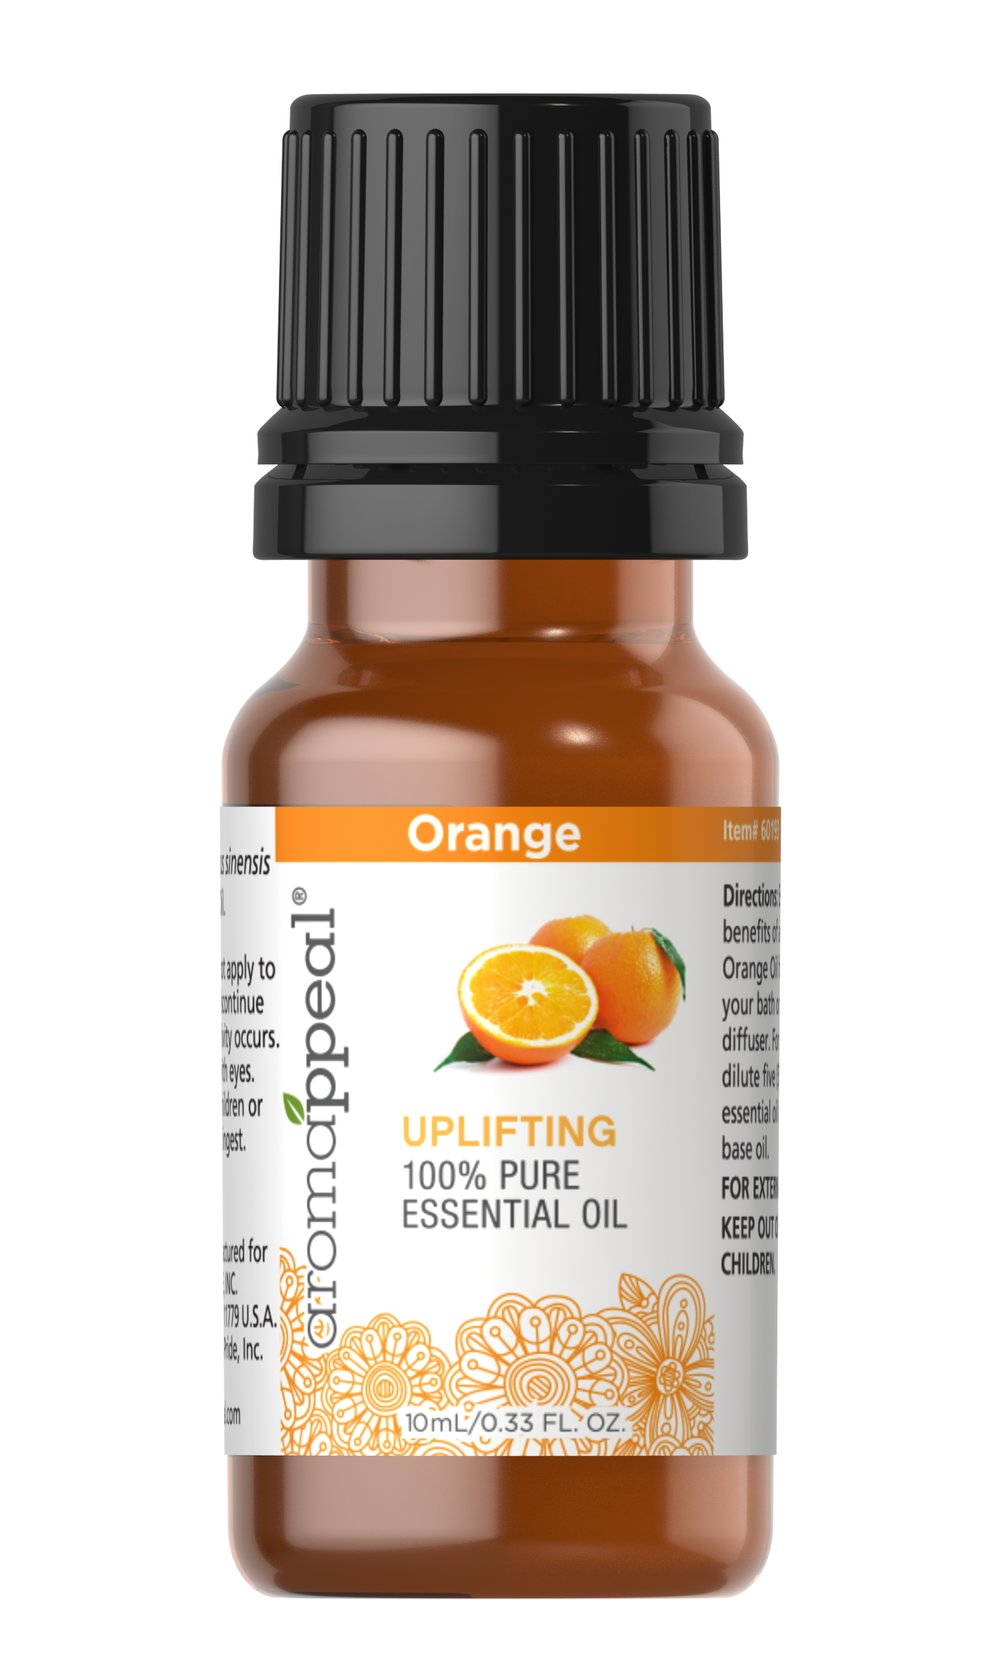 Orange 100% Pure Essential Oil  10 ml Oil  $8.99